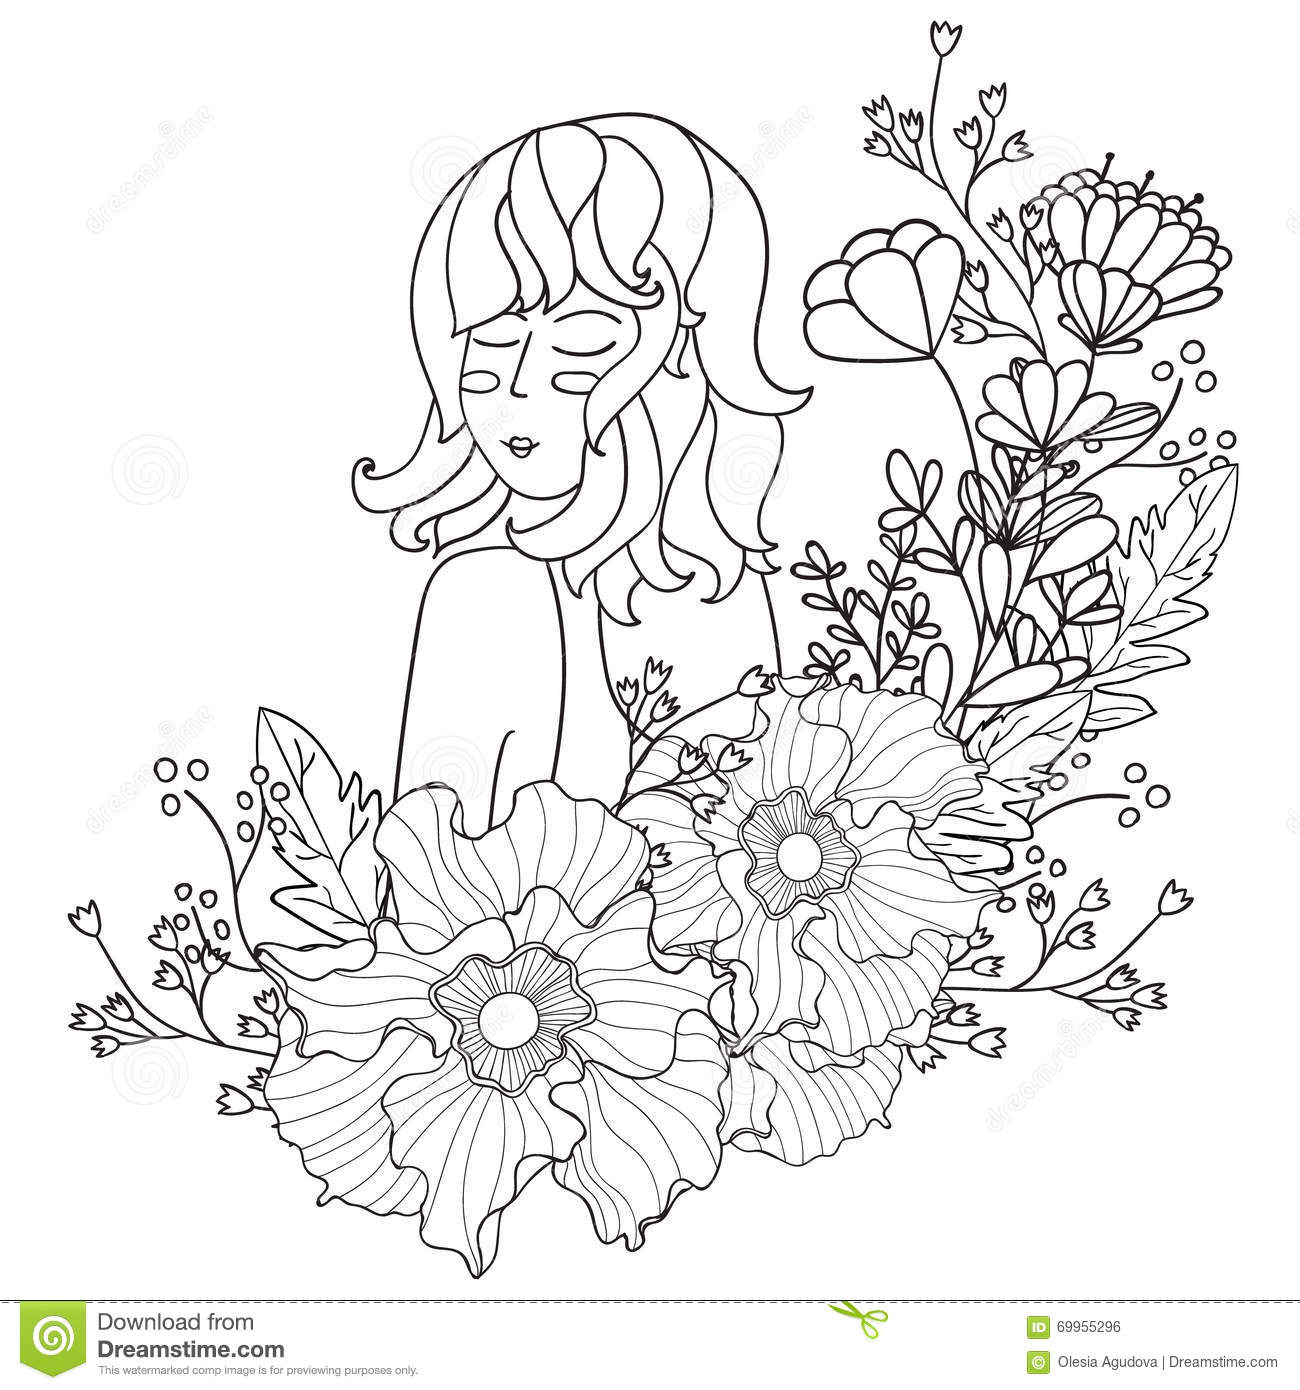 Download Vector Illustration Black And White Woman With Flowers Coloring Pages For Adults Stock